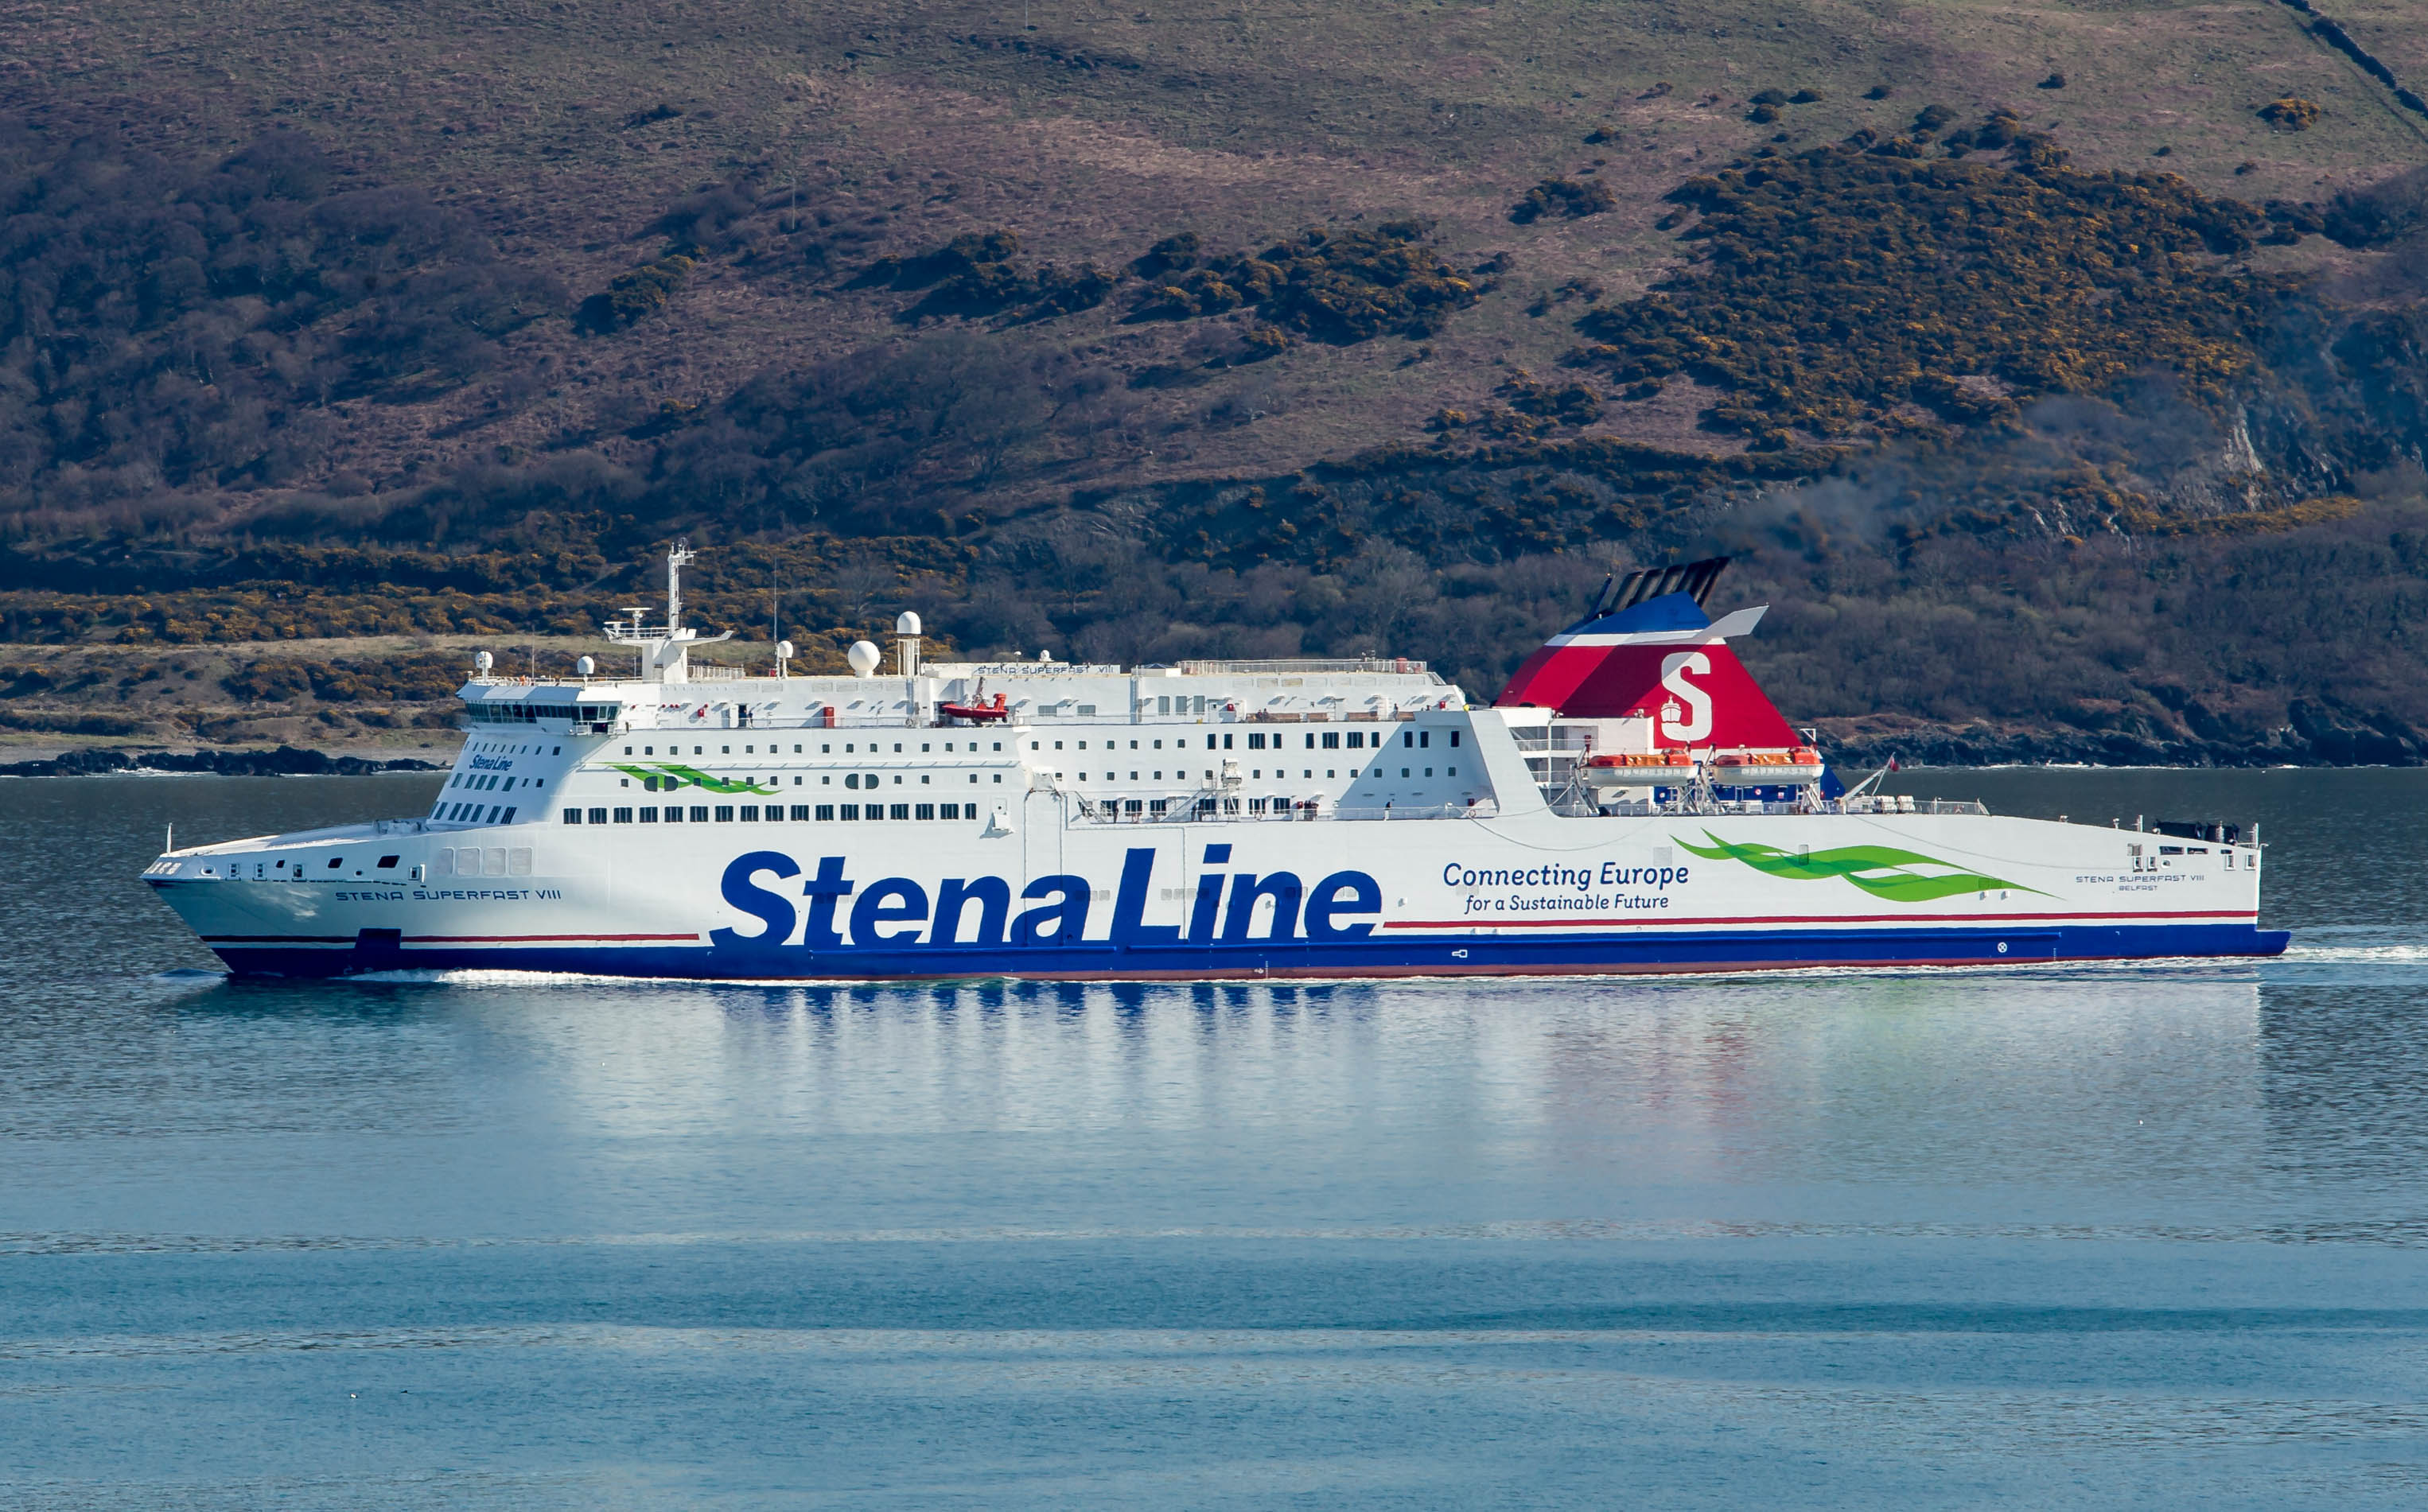 Stena Line newbuild projects begins despite coronavirus